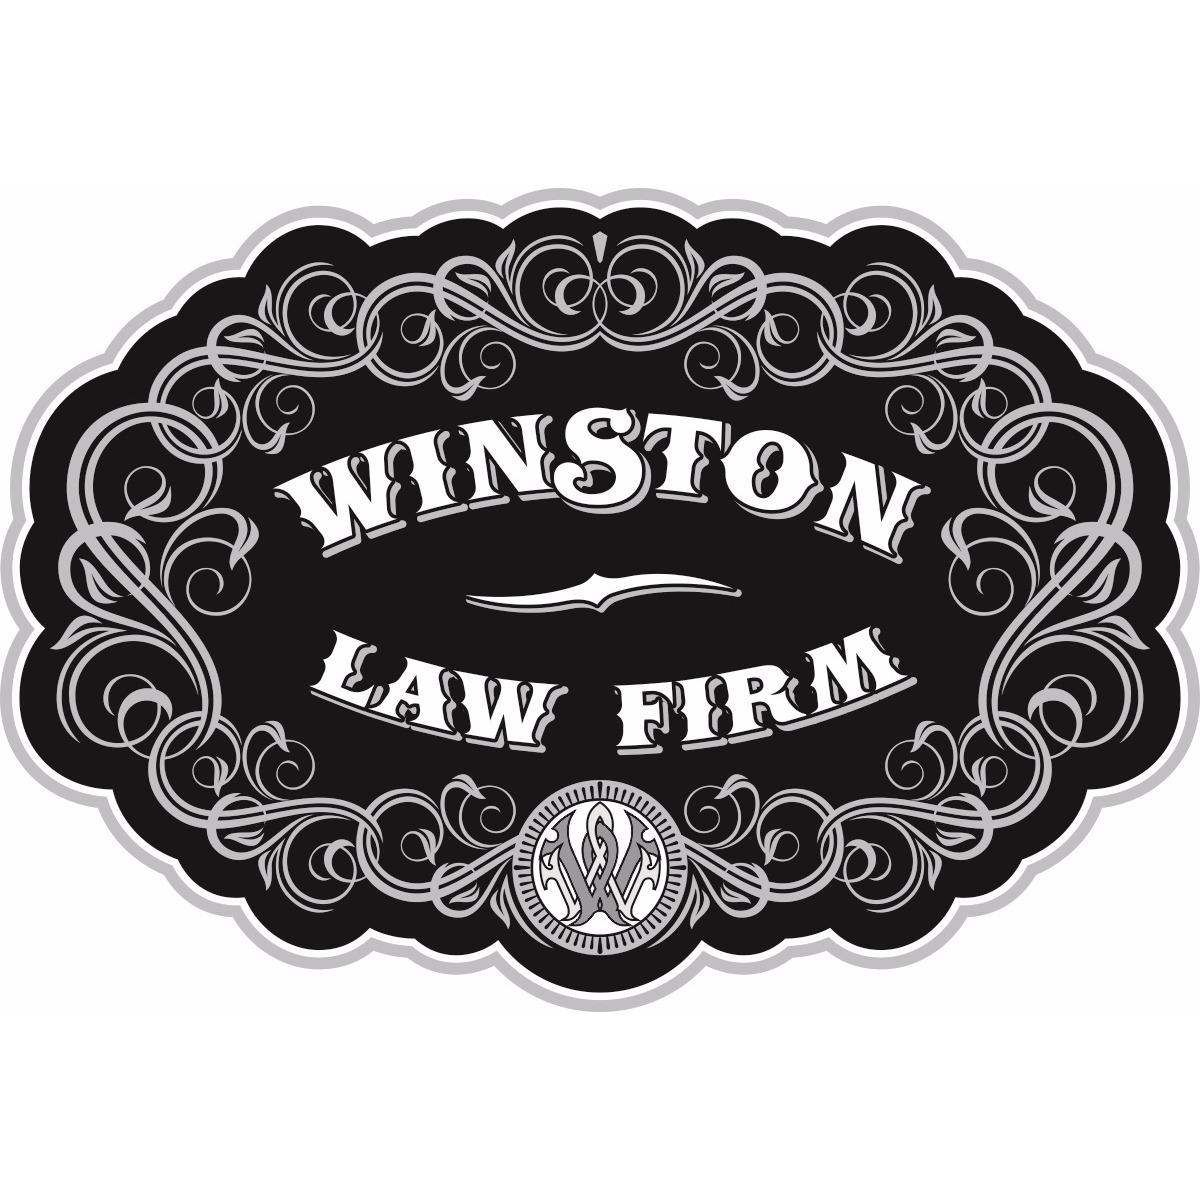 Winston coupons